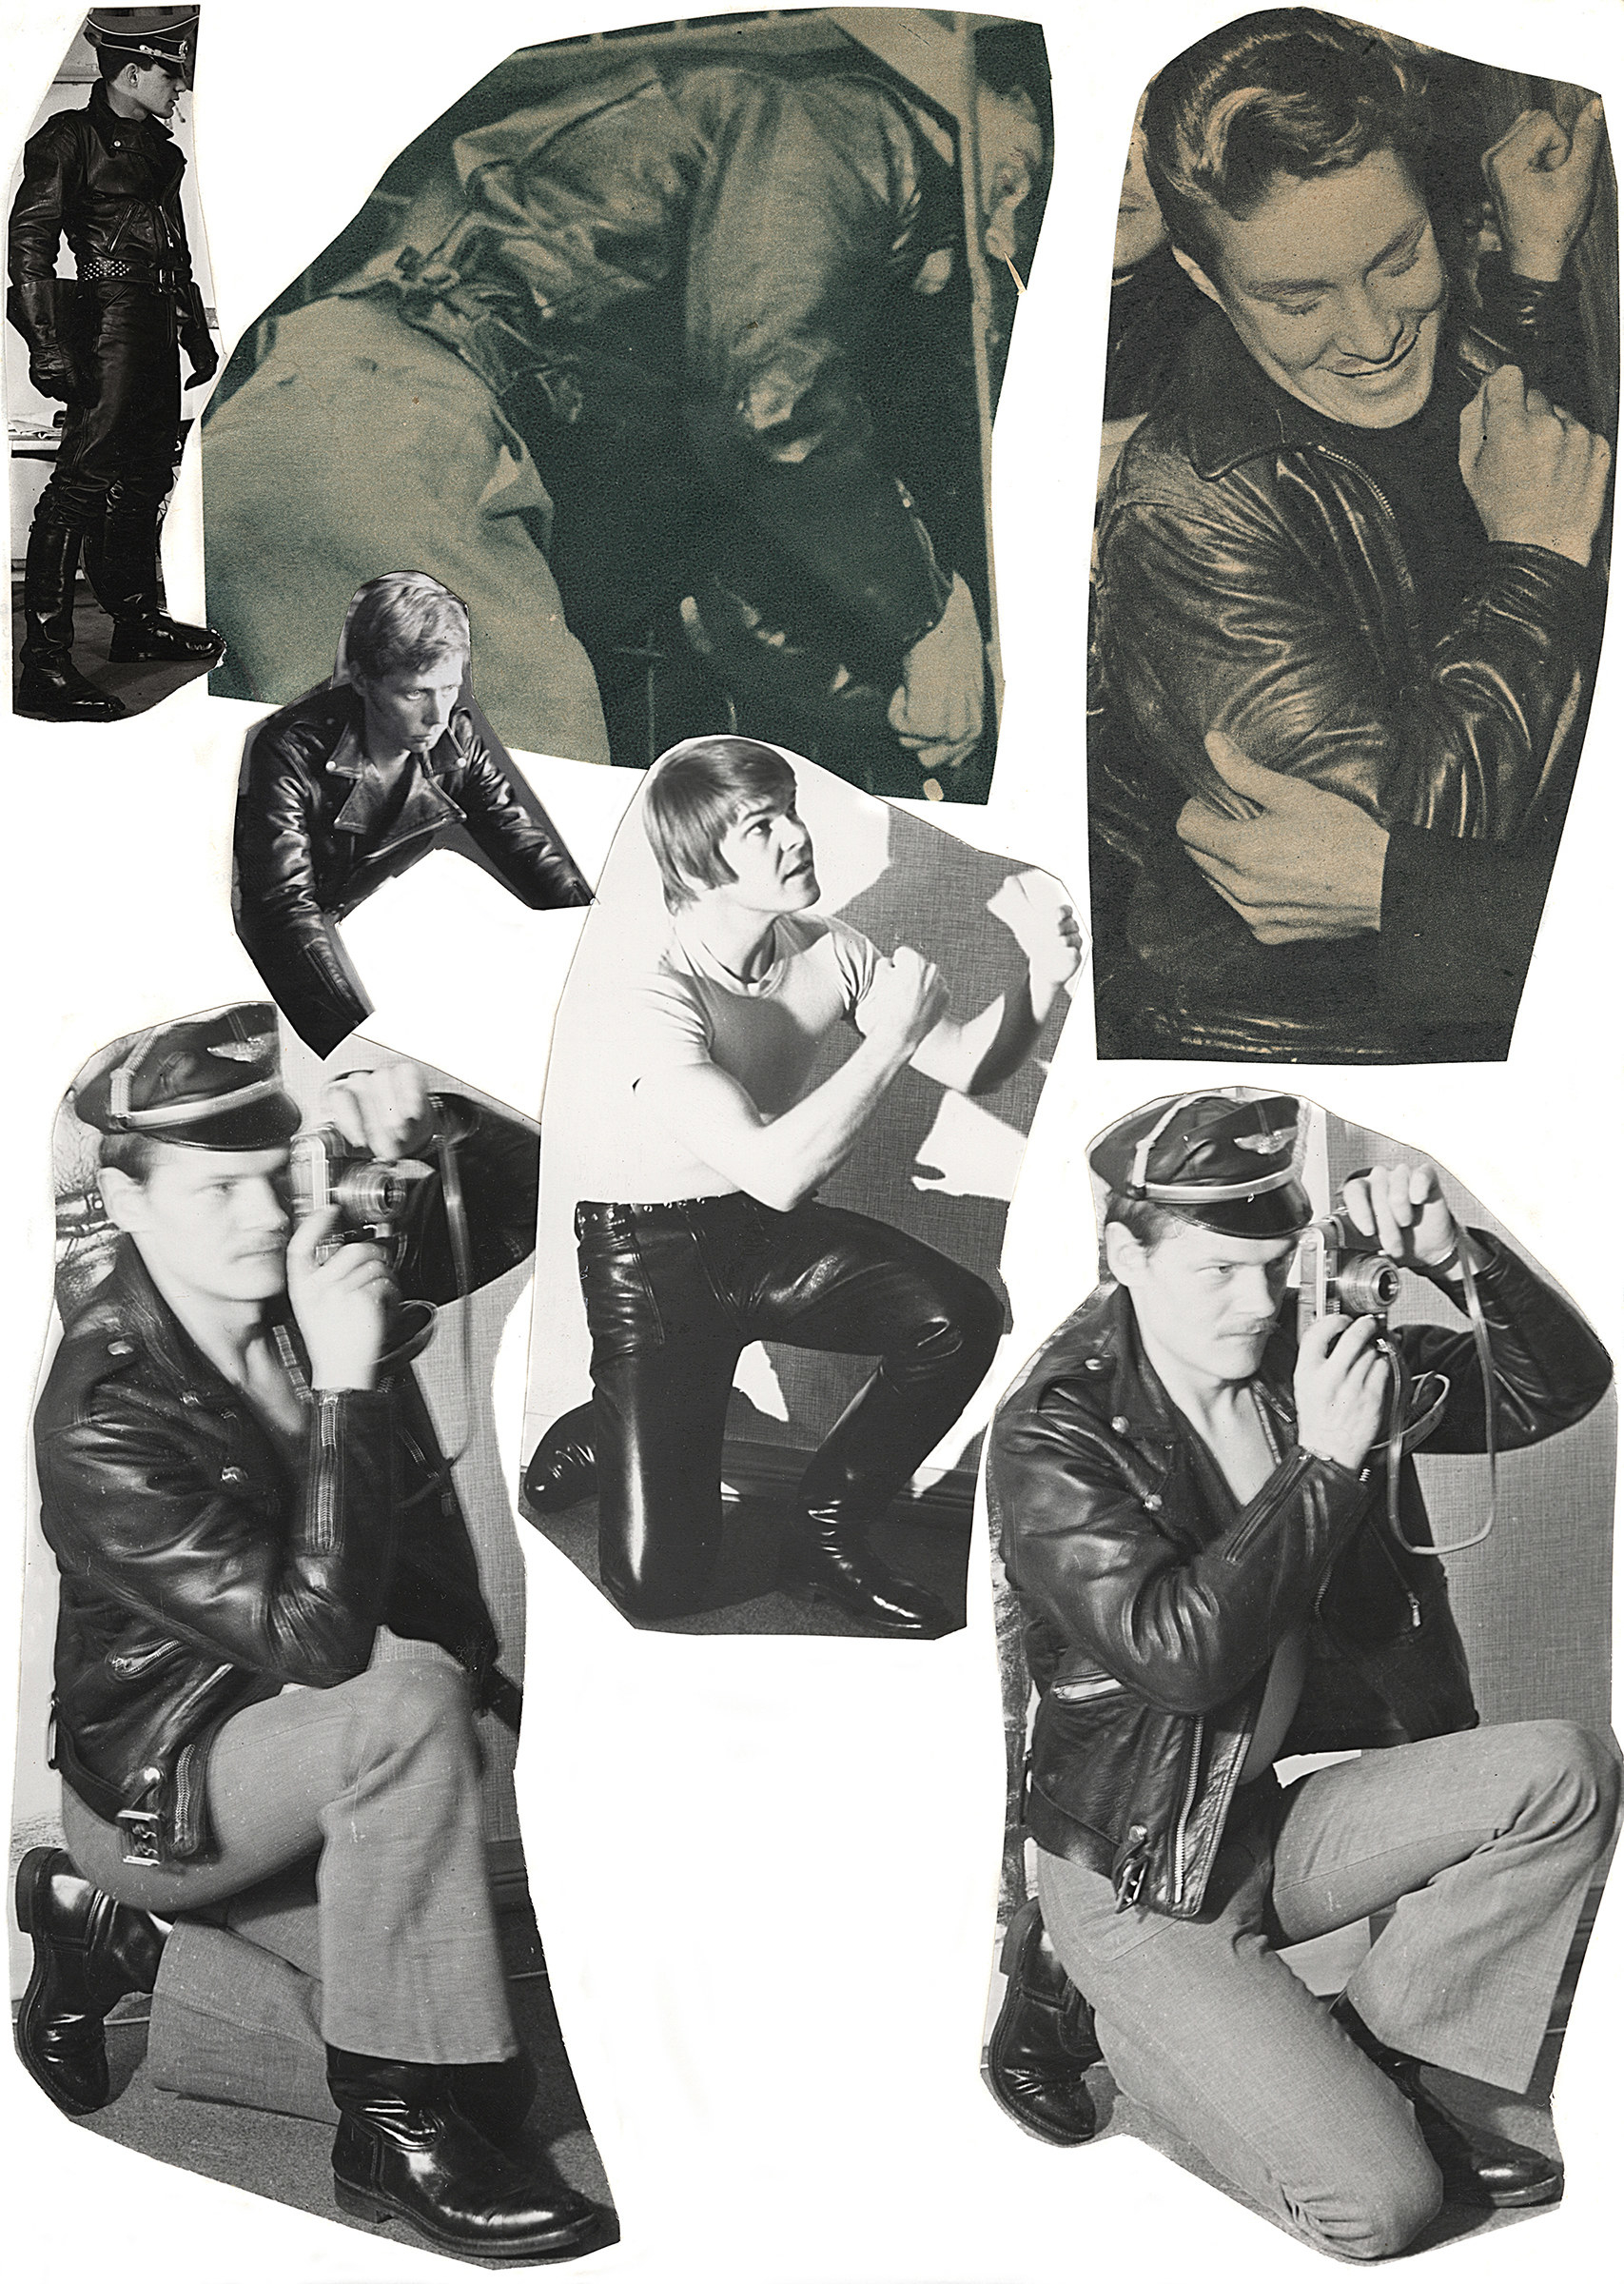 A series of cutout photos show men in leather jackets